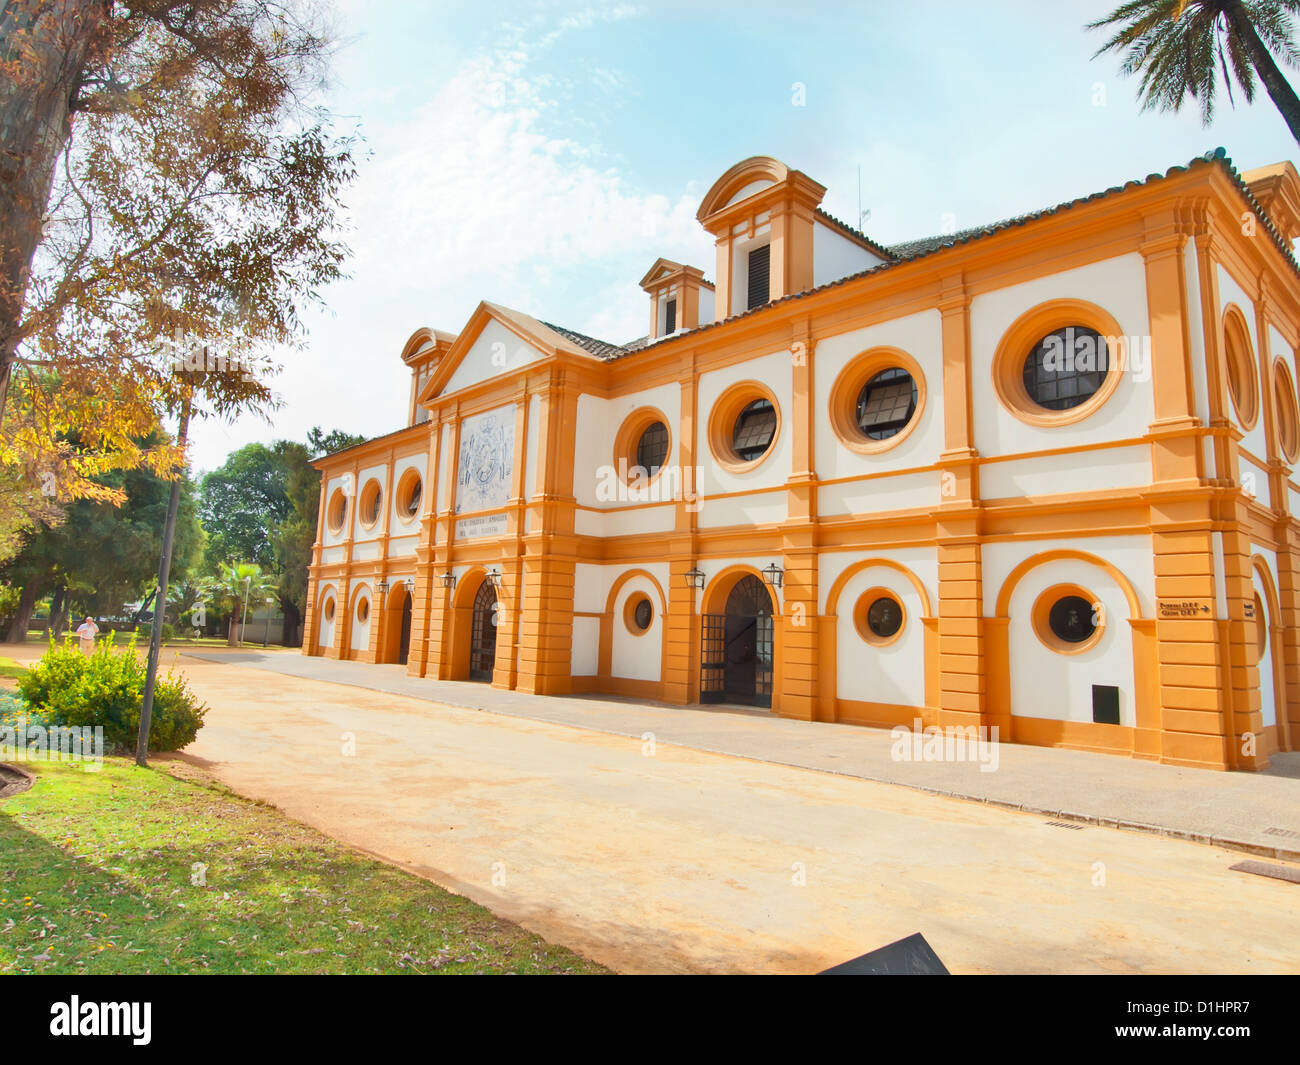 manege of the Royal Andalucían School of Equestrian Art , Jerez, Spain - Stock Image